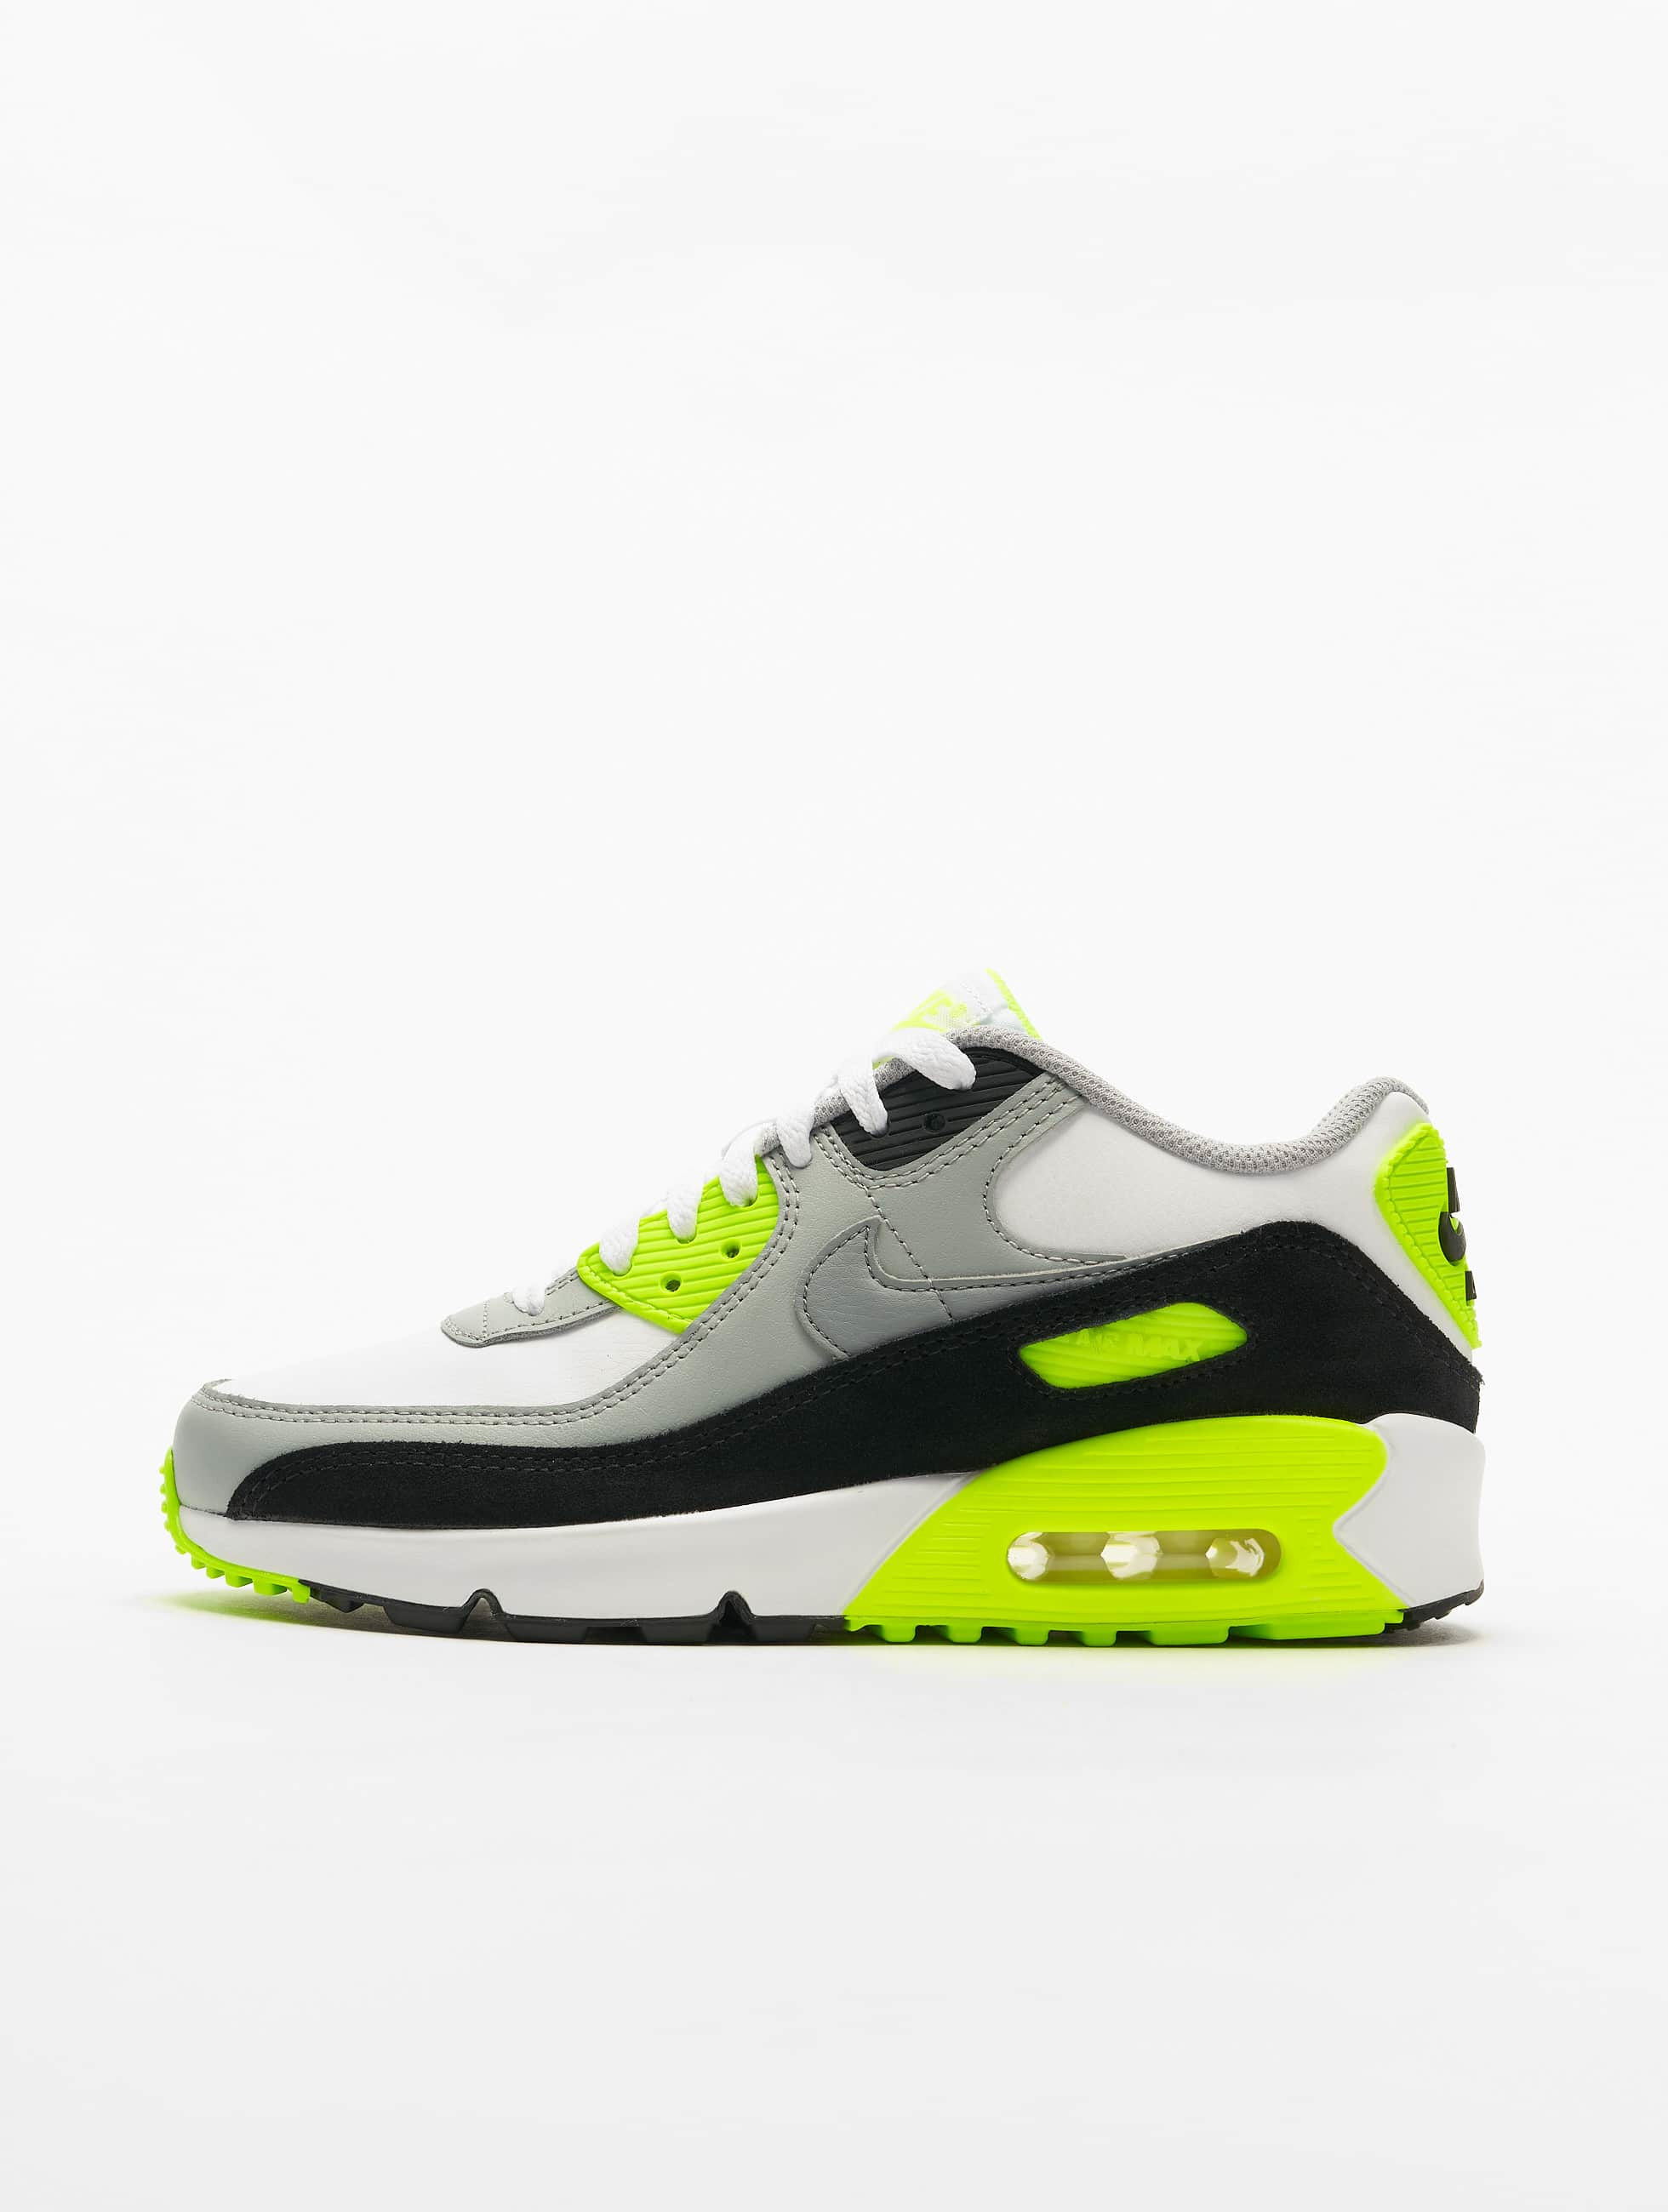 Nike Air Max 90 Ltr (GS) Sneakers WhiteParticle GreyLt Smoke GreyVolt